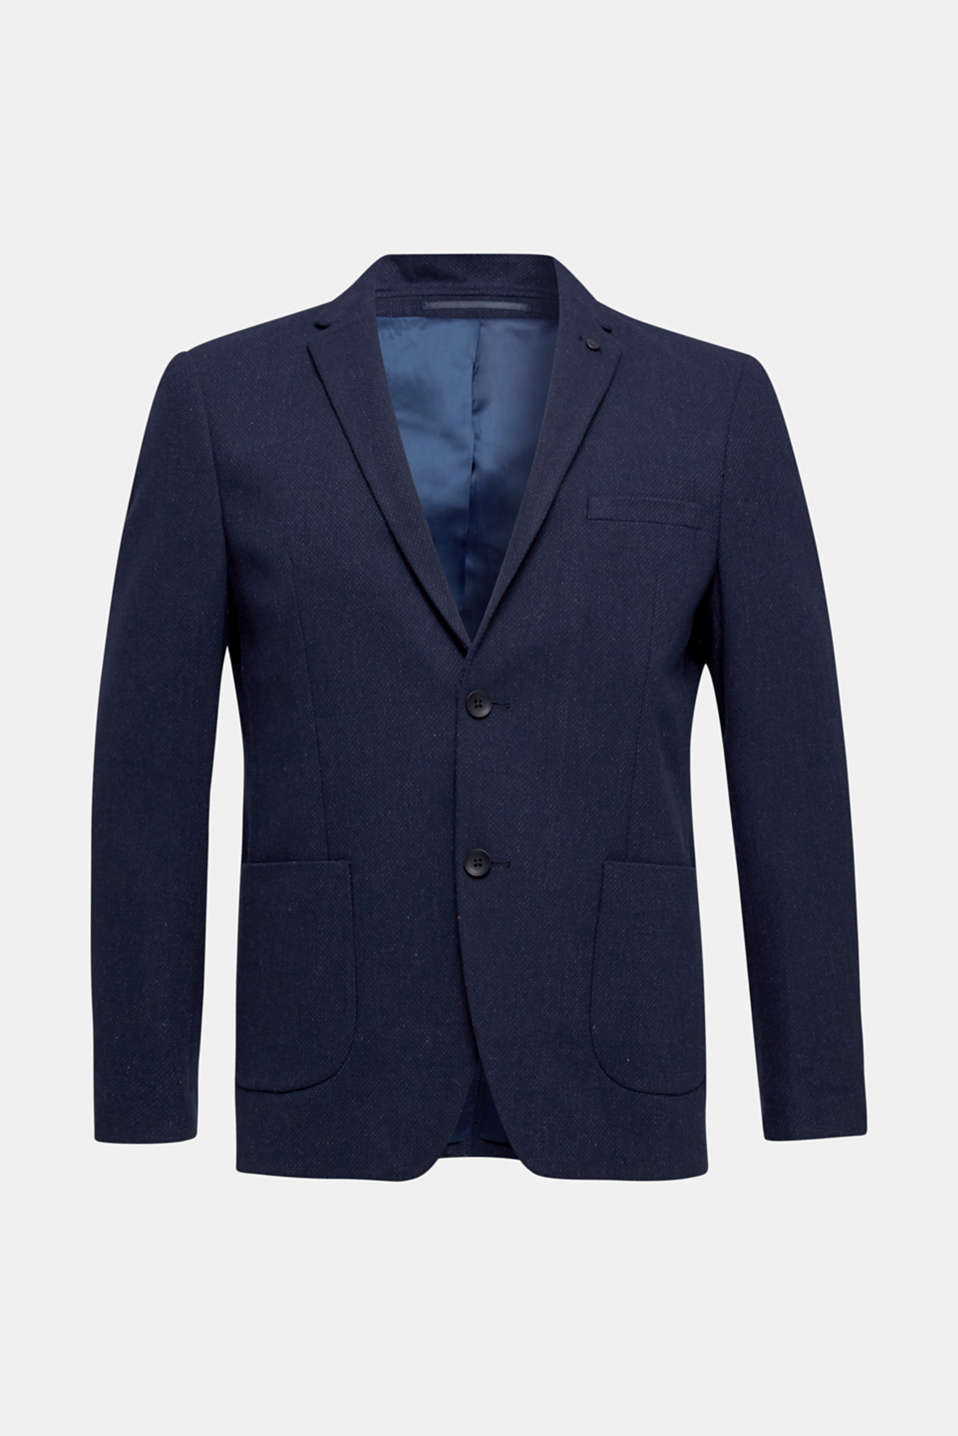 With wool: textured jacket, DARK BLUE, detail image number 7